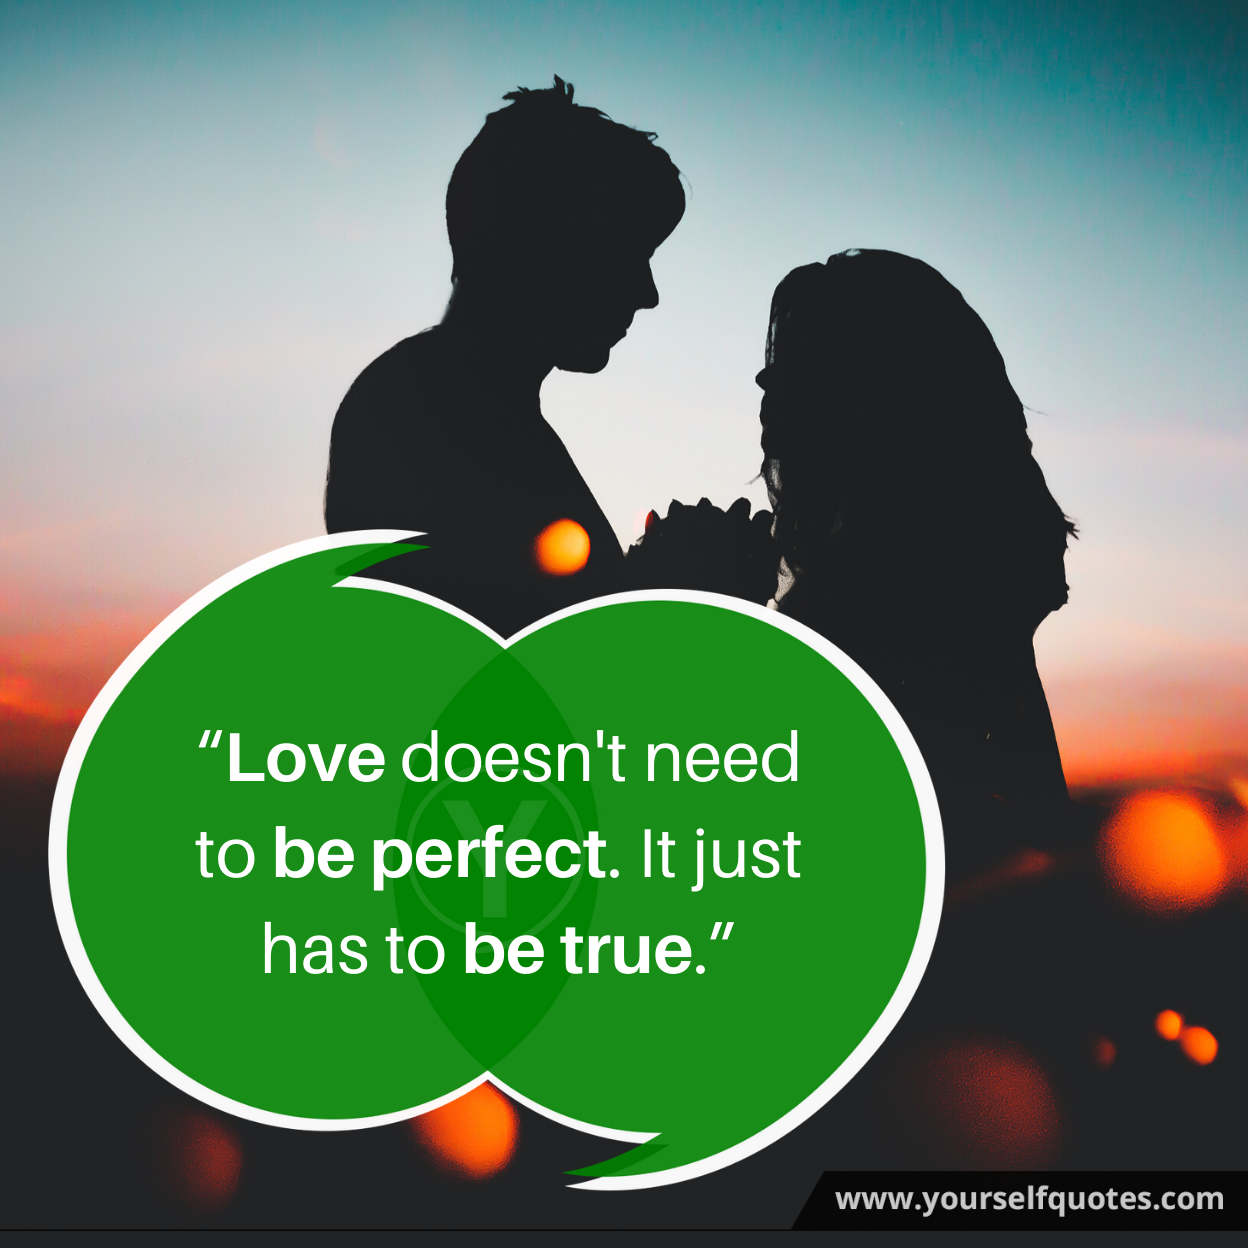 Love Quotes About Relationships Images